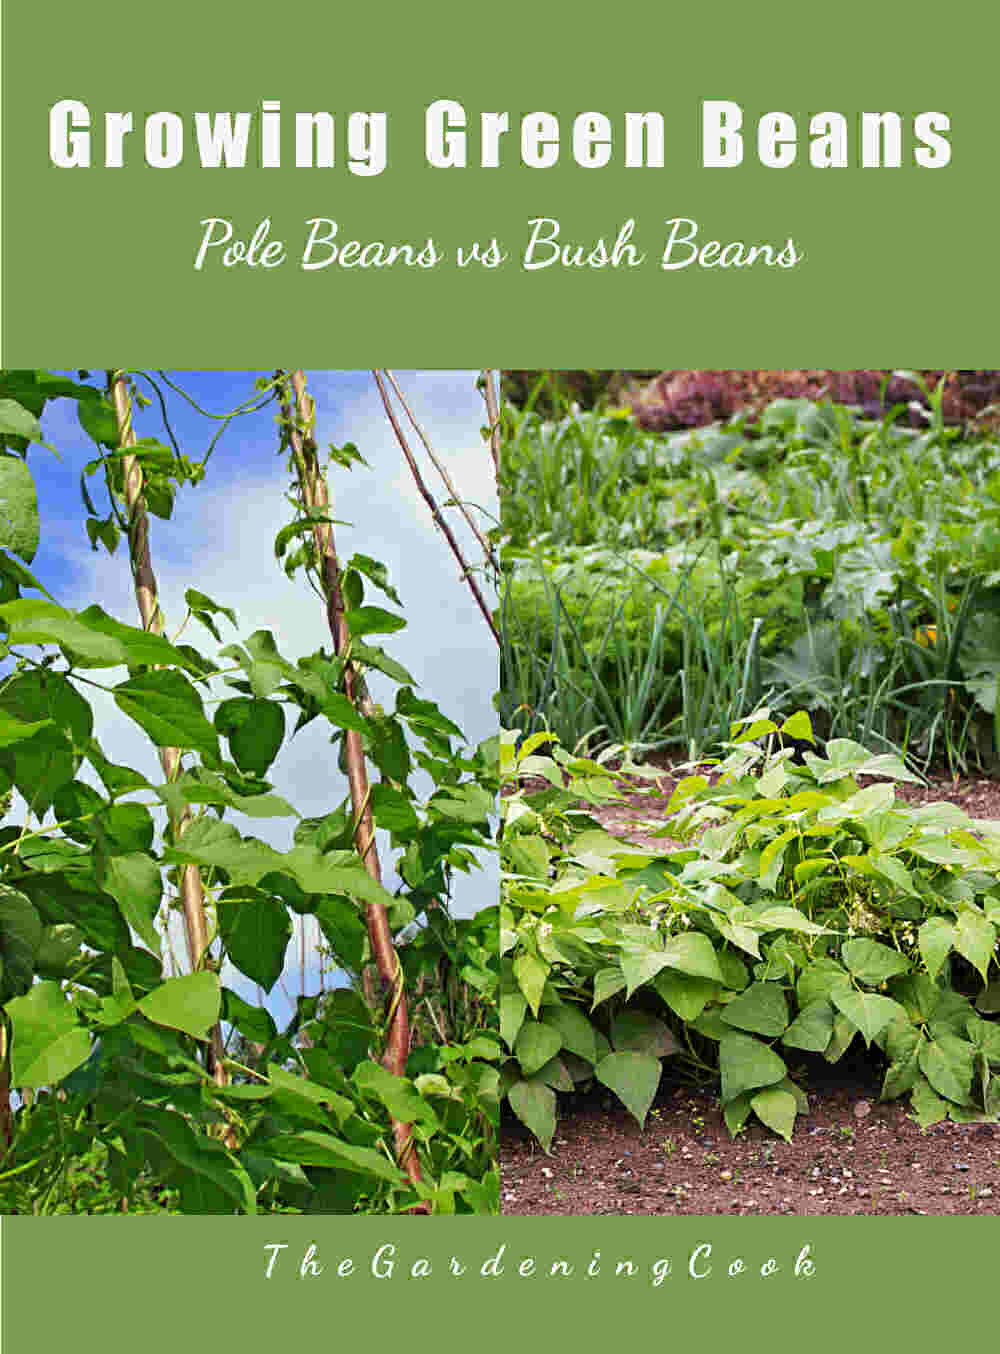 Pole beans and bush beans in a collage with a green background and words Growing Green Beans - Pole Beans vs Bush Beans.